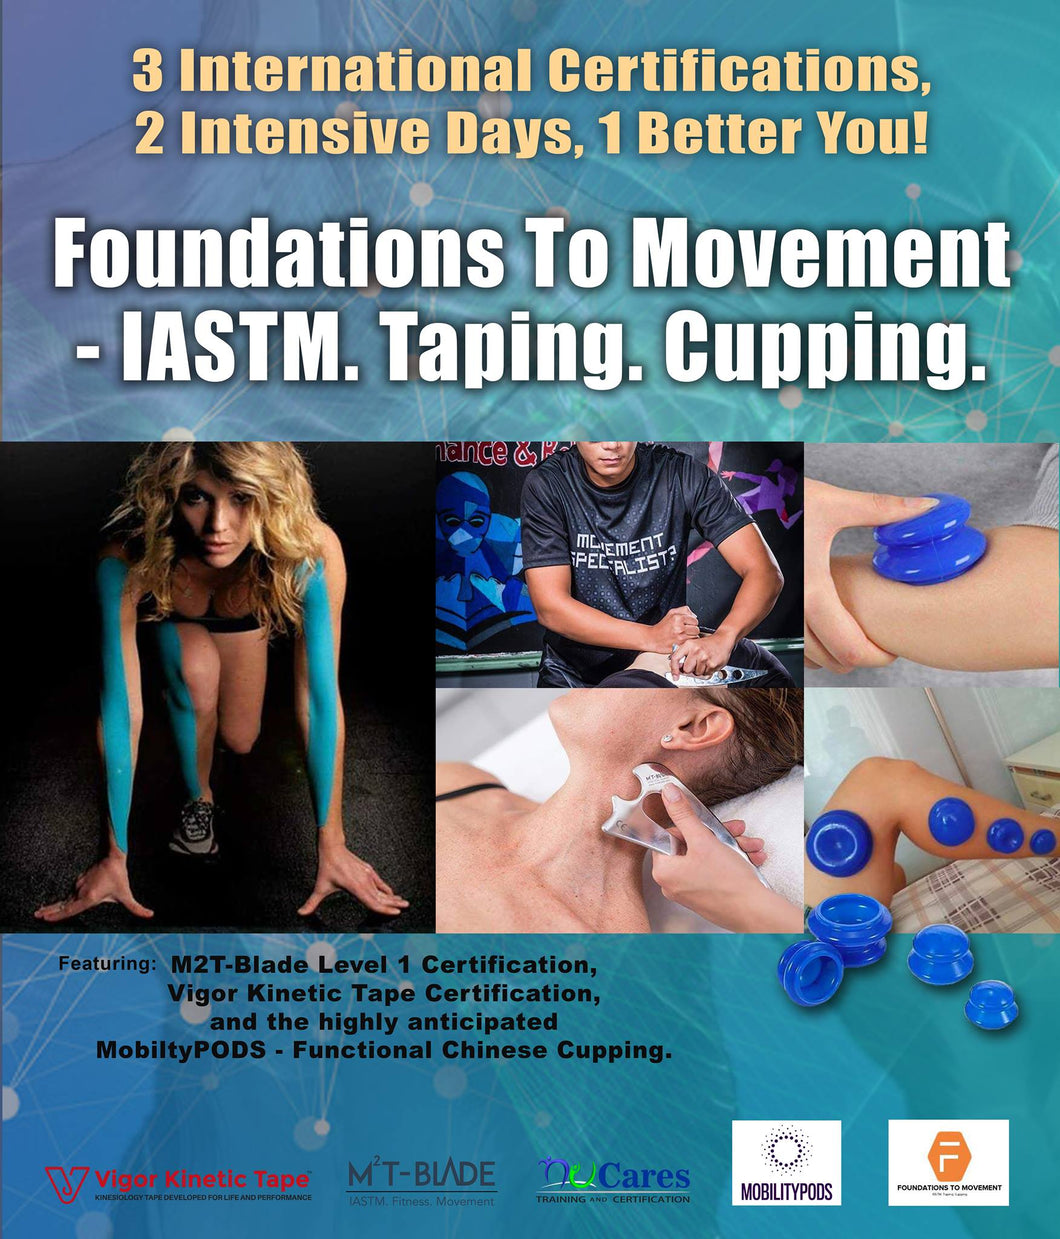 Kuala Lumpur Foundations To Movement: IASTM. Taping. Cupping